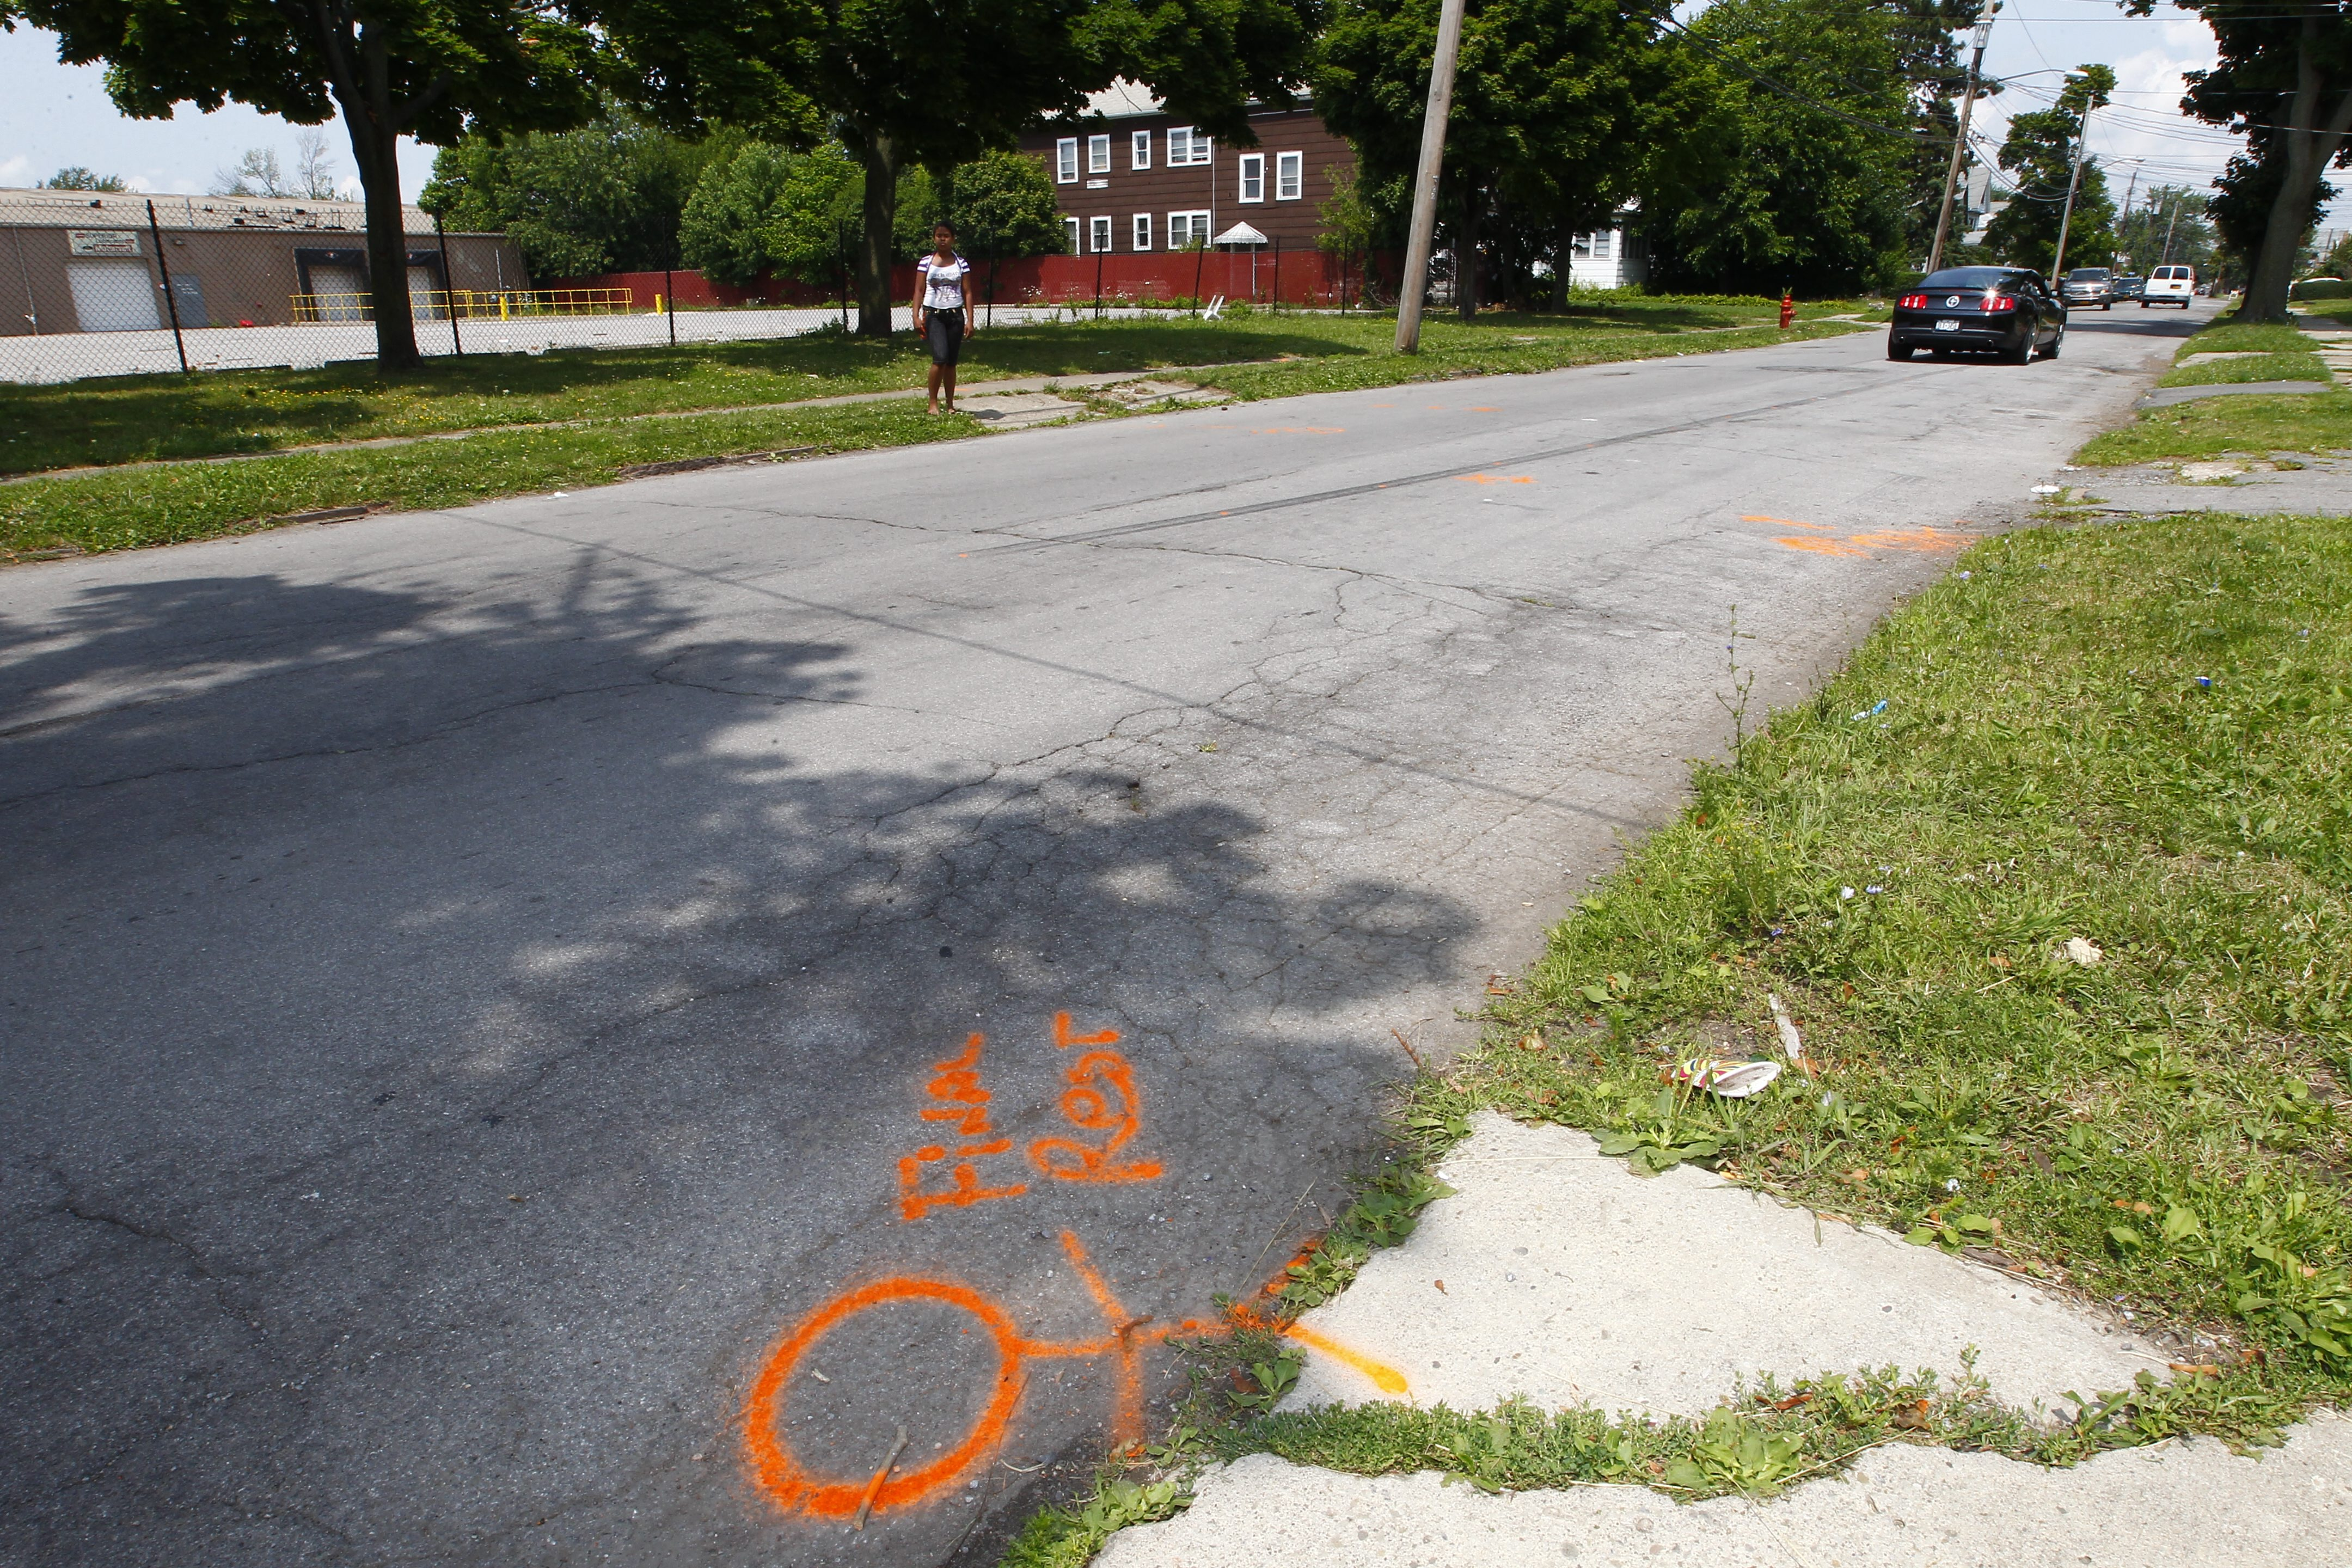 Closer to home than Cincinnati, a 2-year-old girl who had slipped away from supervision was struck by a speeding car on Floss Avenue in Buffalo in 2014. (John Hickey/News file photo)